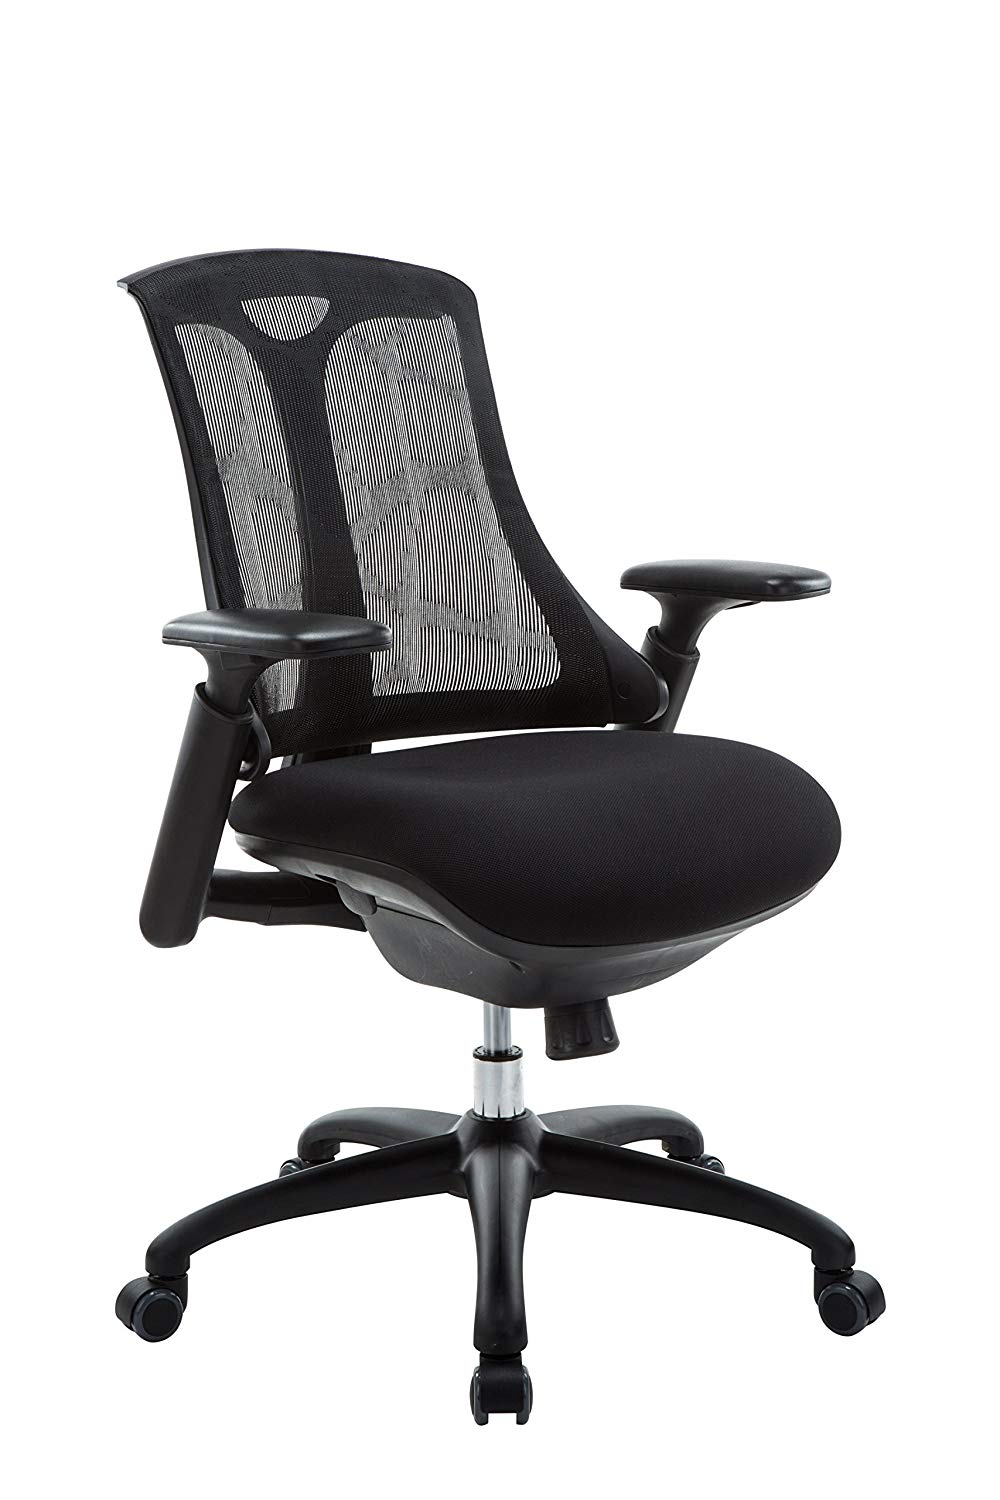 Office Factor Mid Mesh Back Office Chair Comfortable Ergonomic Computer Chair Ventilated Mesh Back Task Chair For Office Home Multi Function